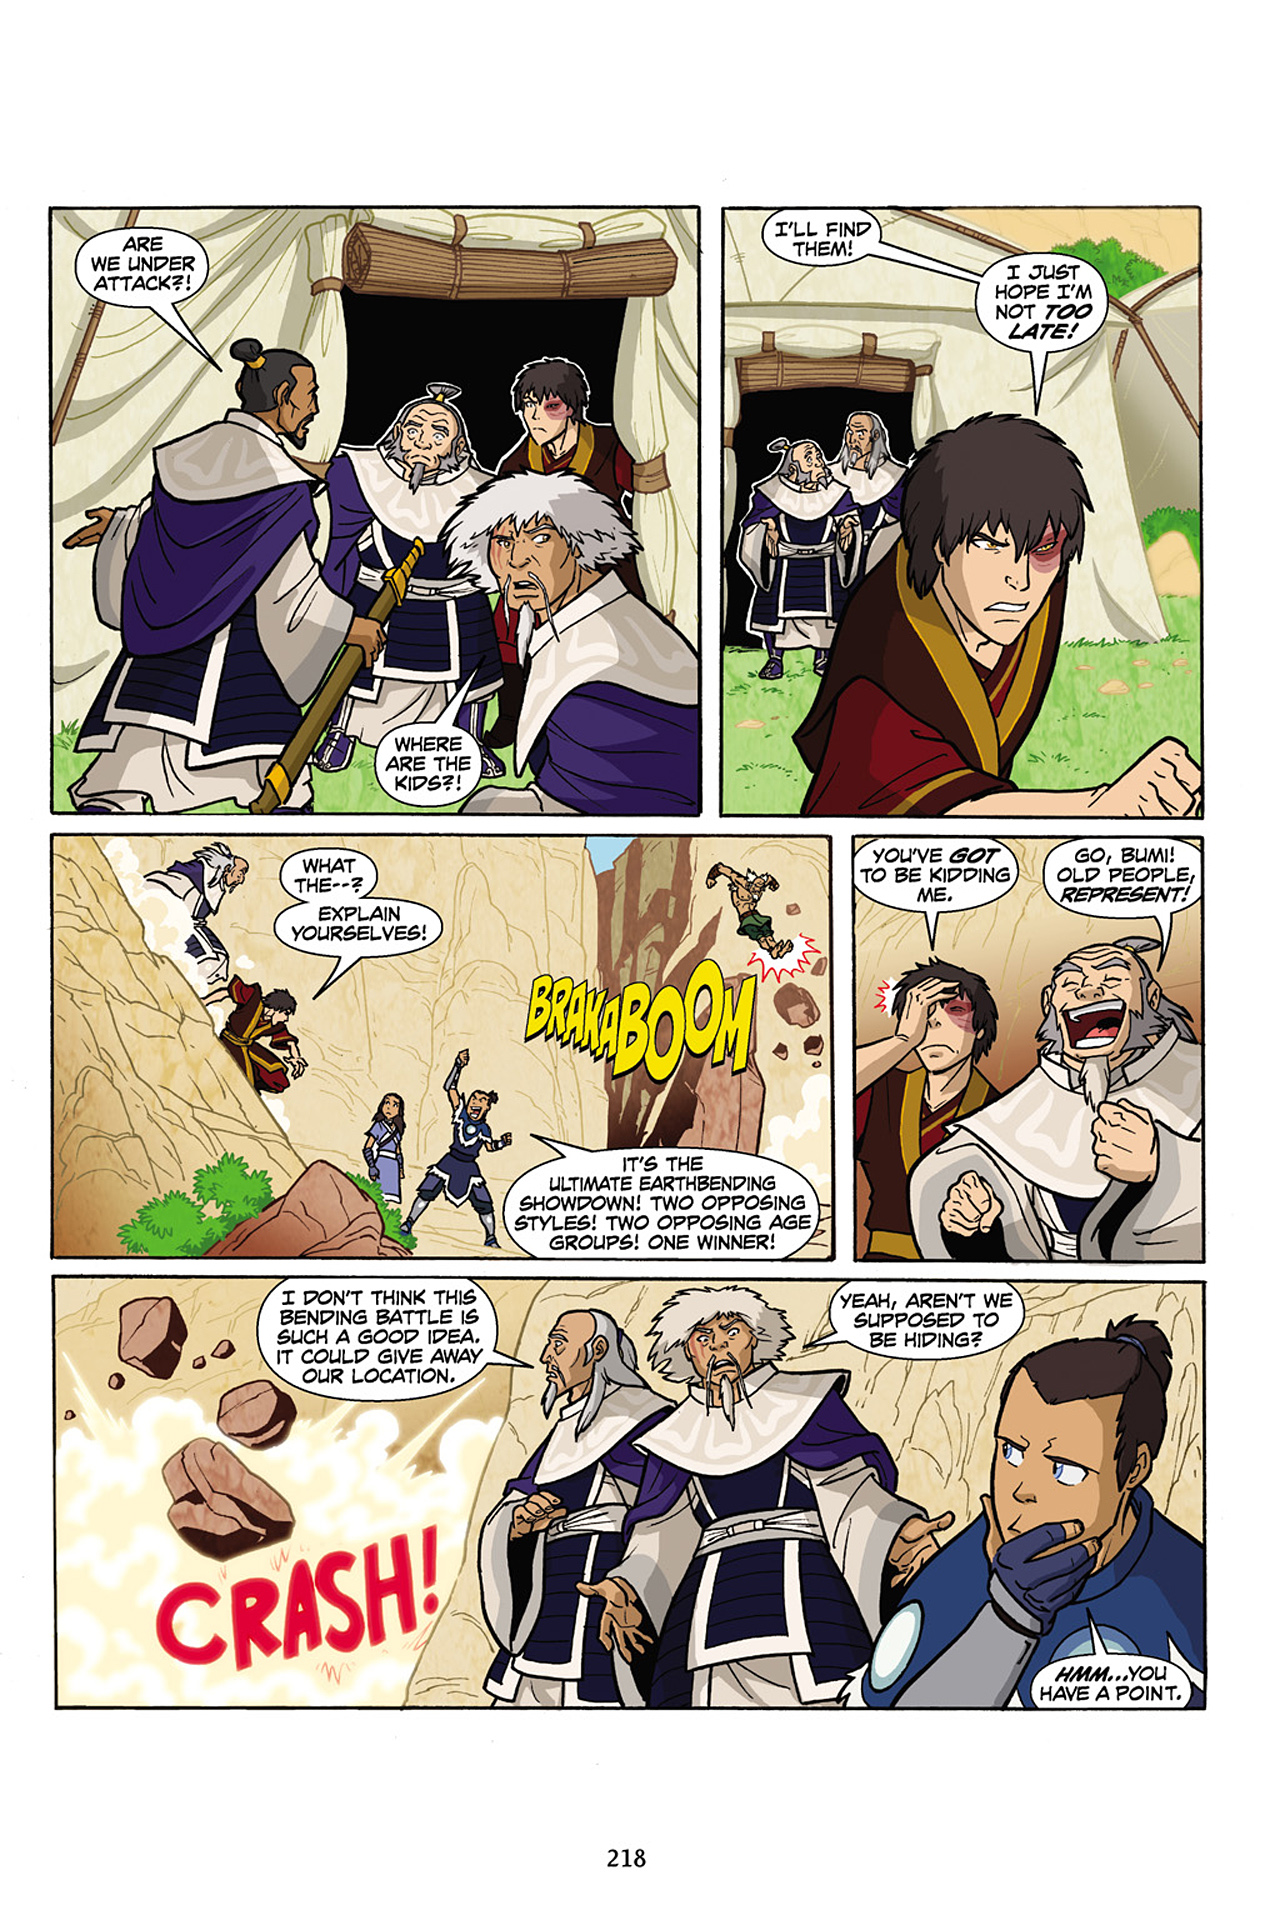 Nickelodeon Avatar: The Last Airbender - The Lost Adventures chap full pic 219